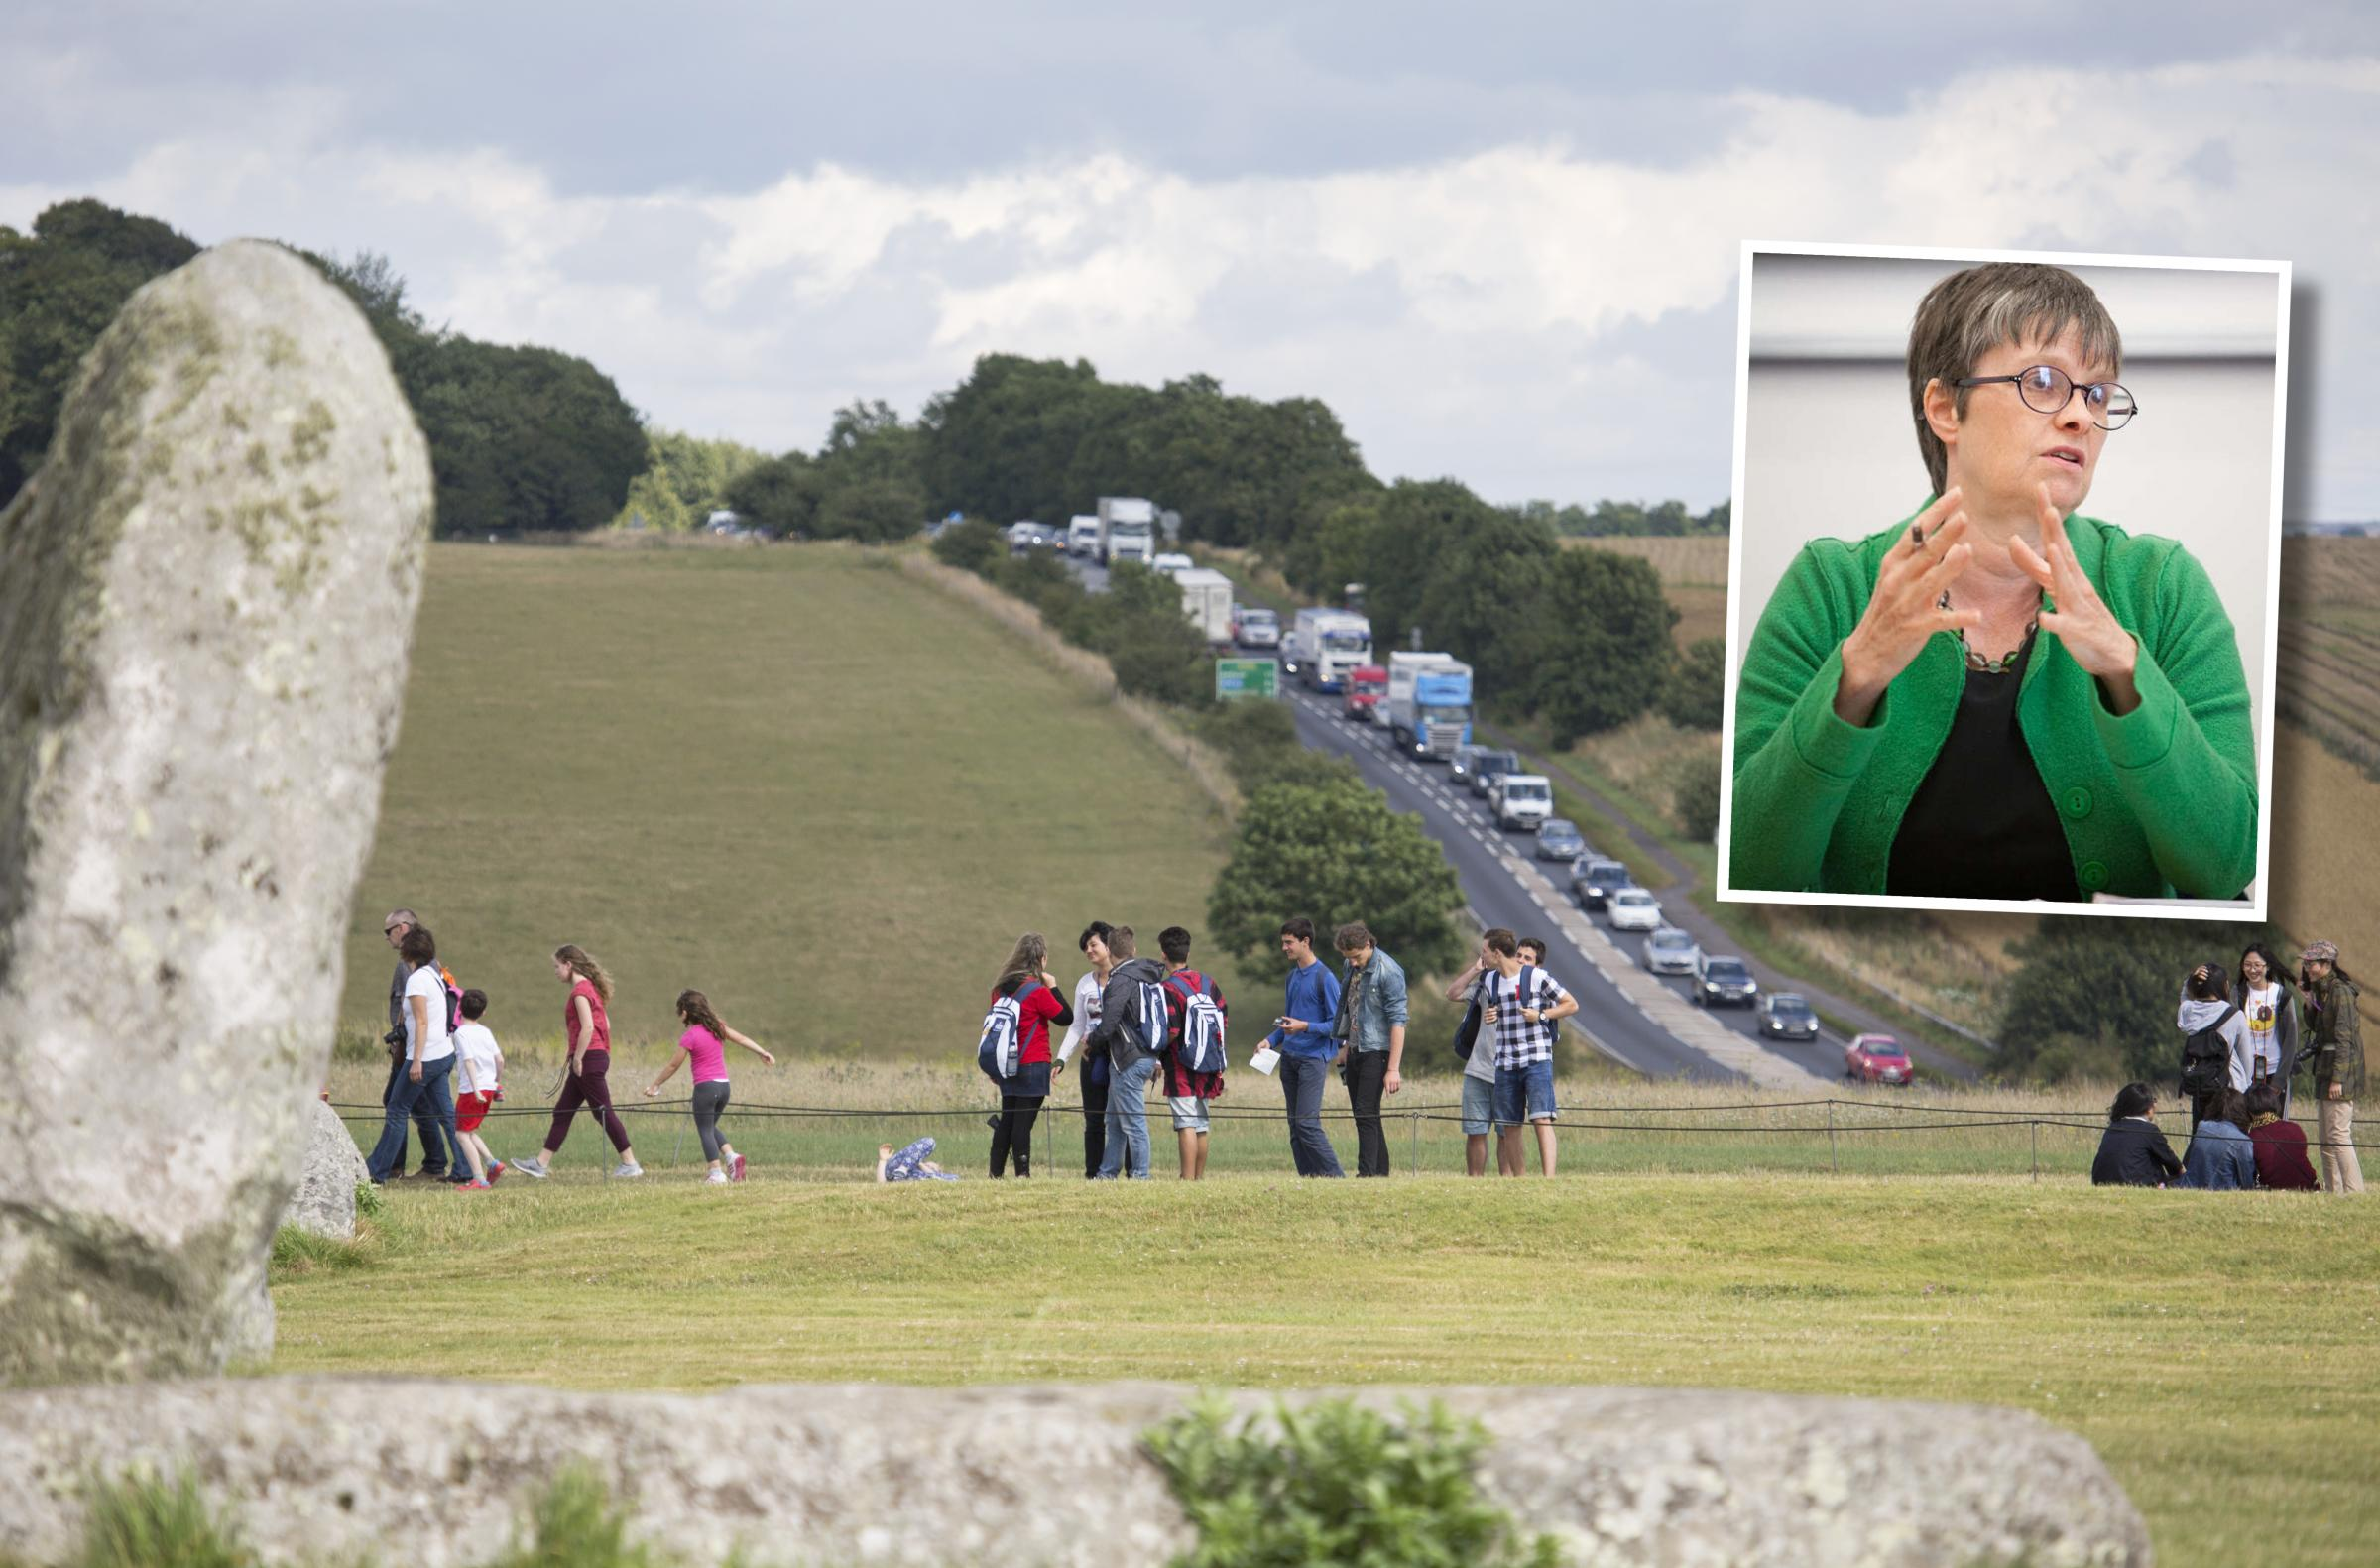 OPPOSITION: Molly Scott Cato, inset, has hit out at the plans. MAIN PICTURE: Highways England